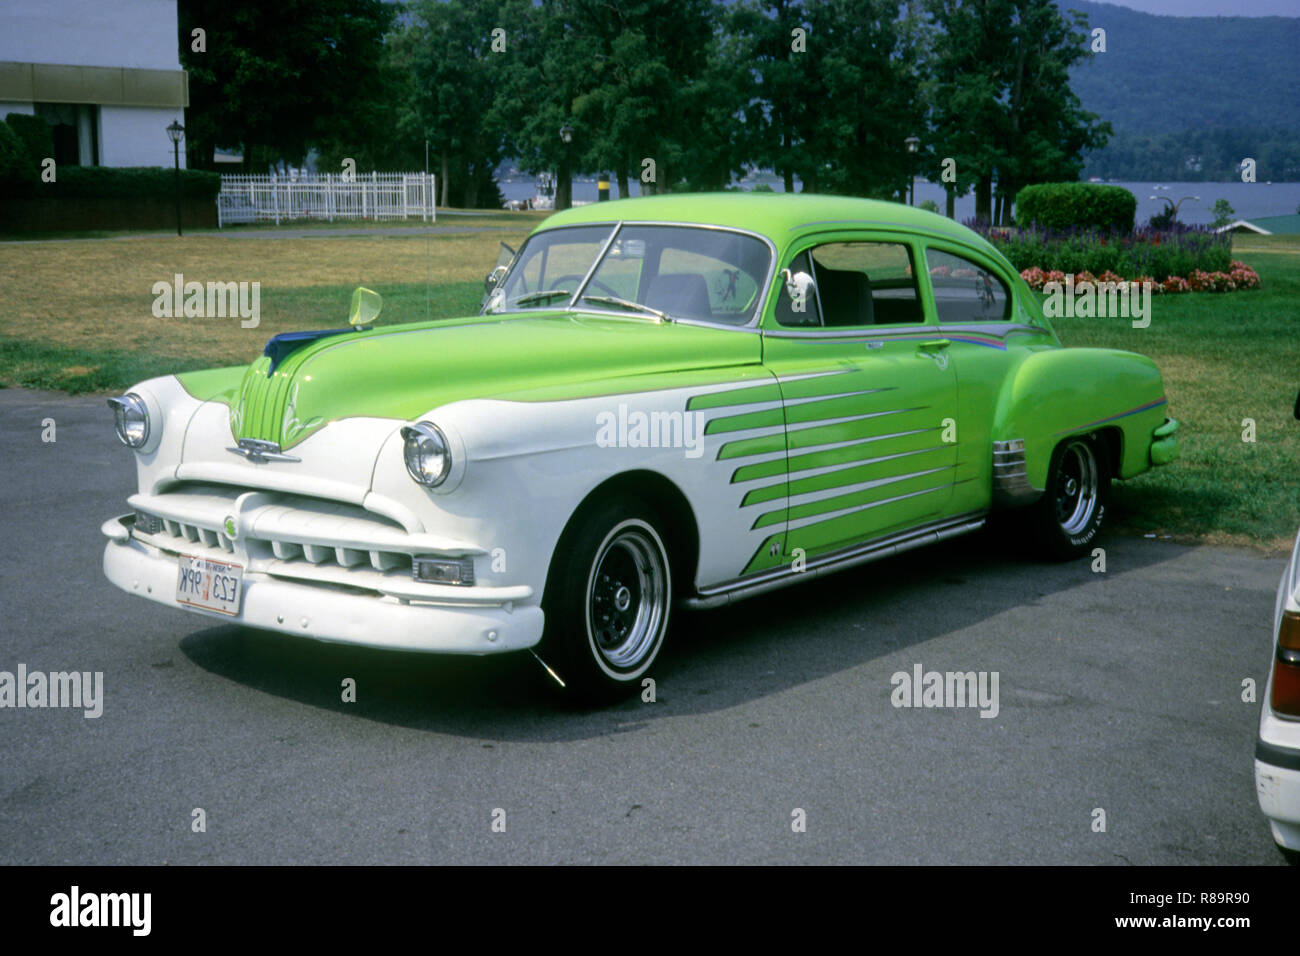 Cars Vehicles Automobiles, Classic Car from the 50's, 60's, 70's - Stock Image